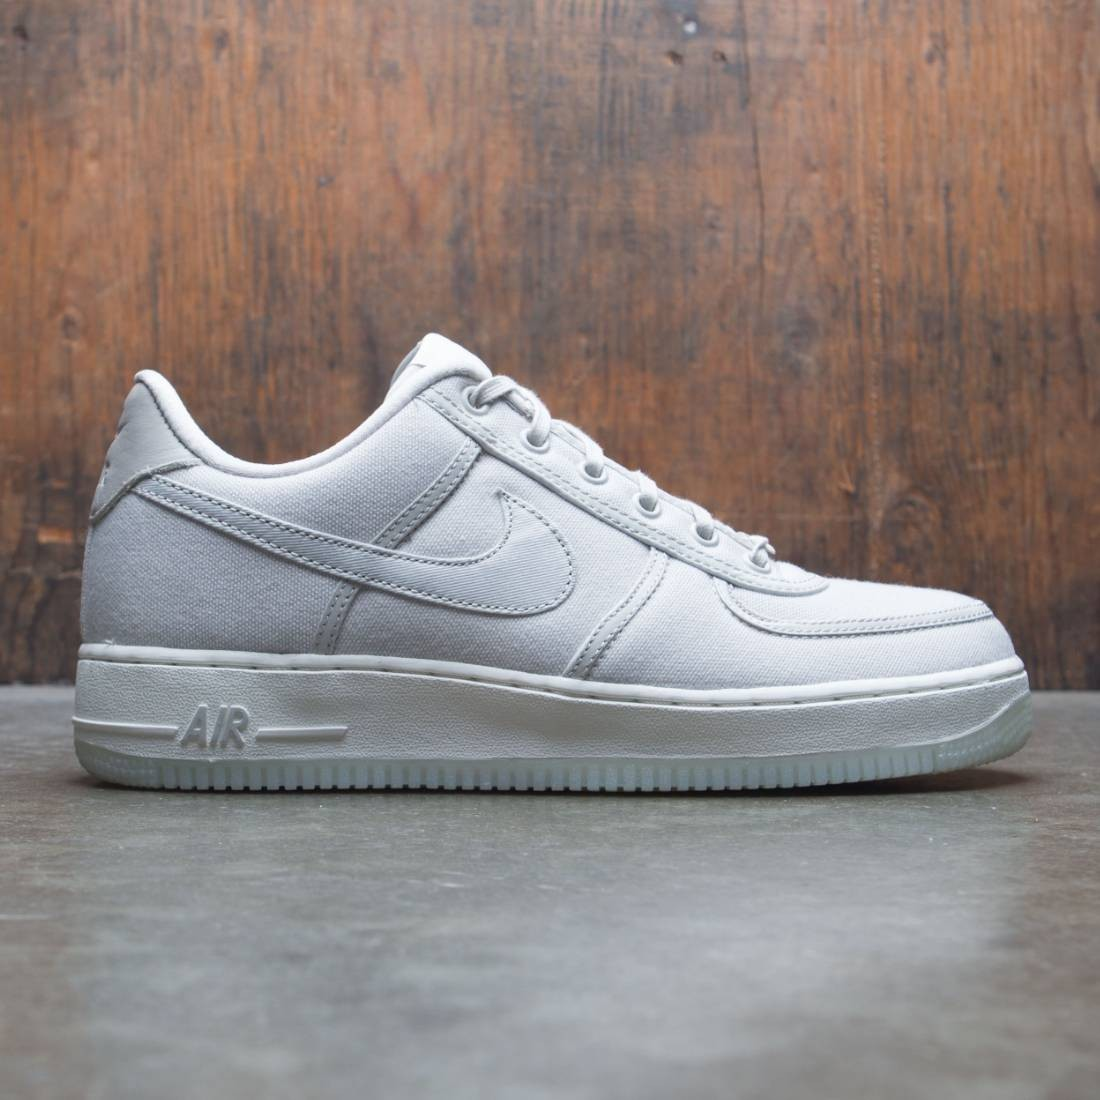 the best attitude e7c65 35592 nike men air force 1 low retro qs canvas light bone light bone sail